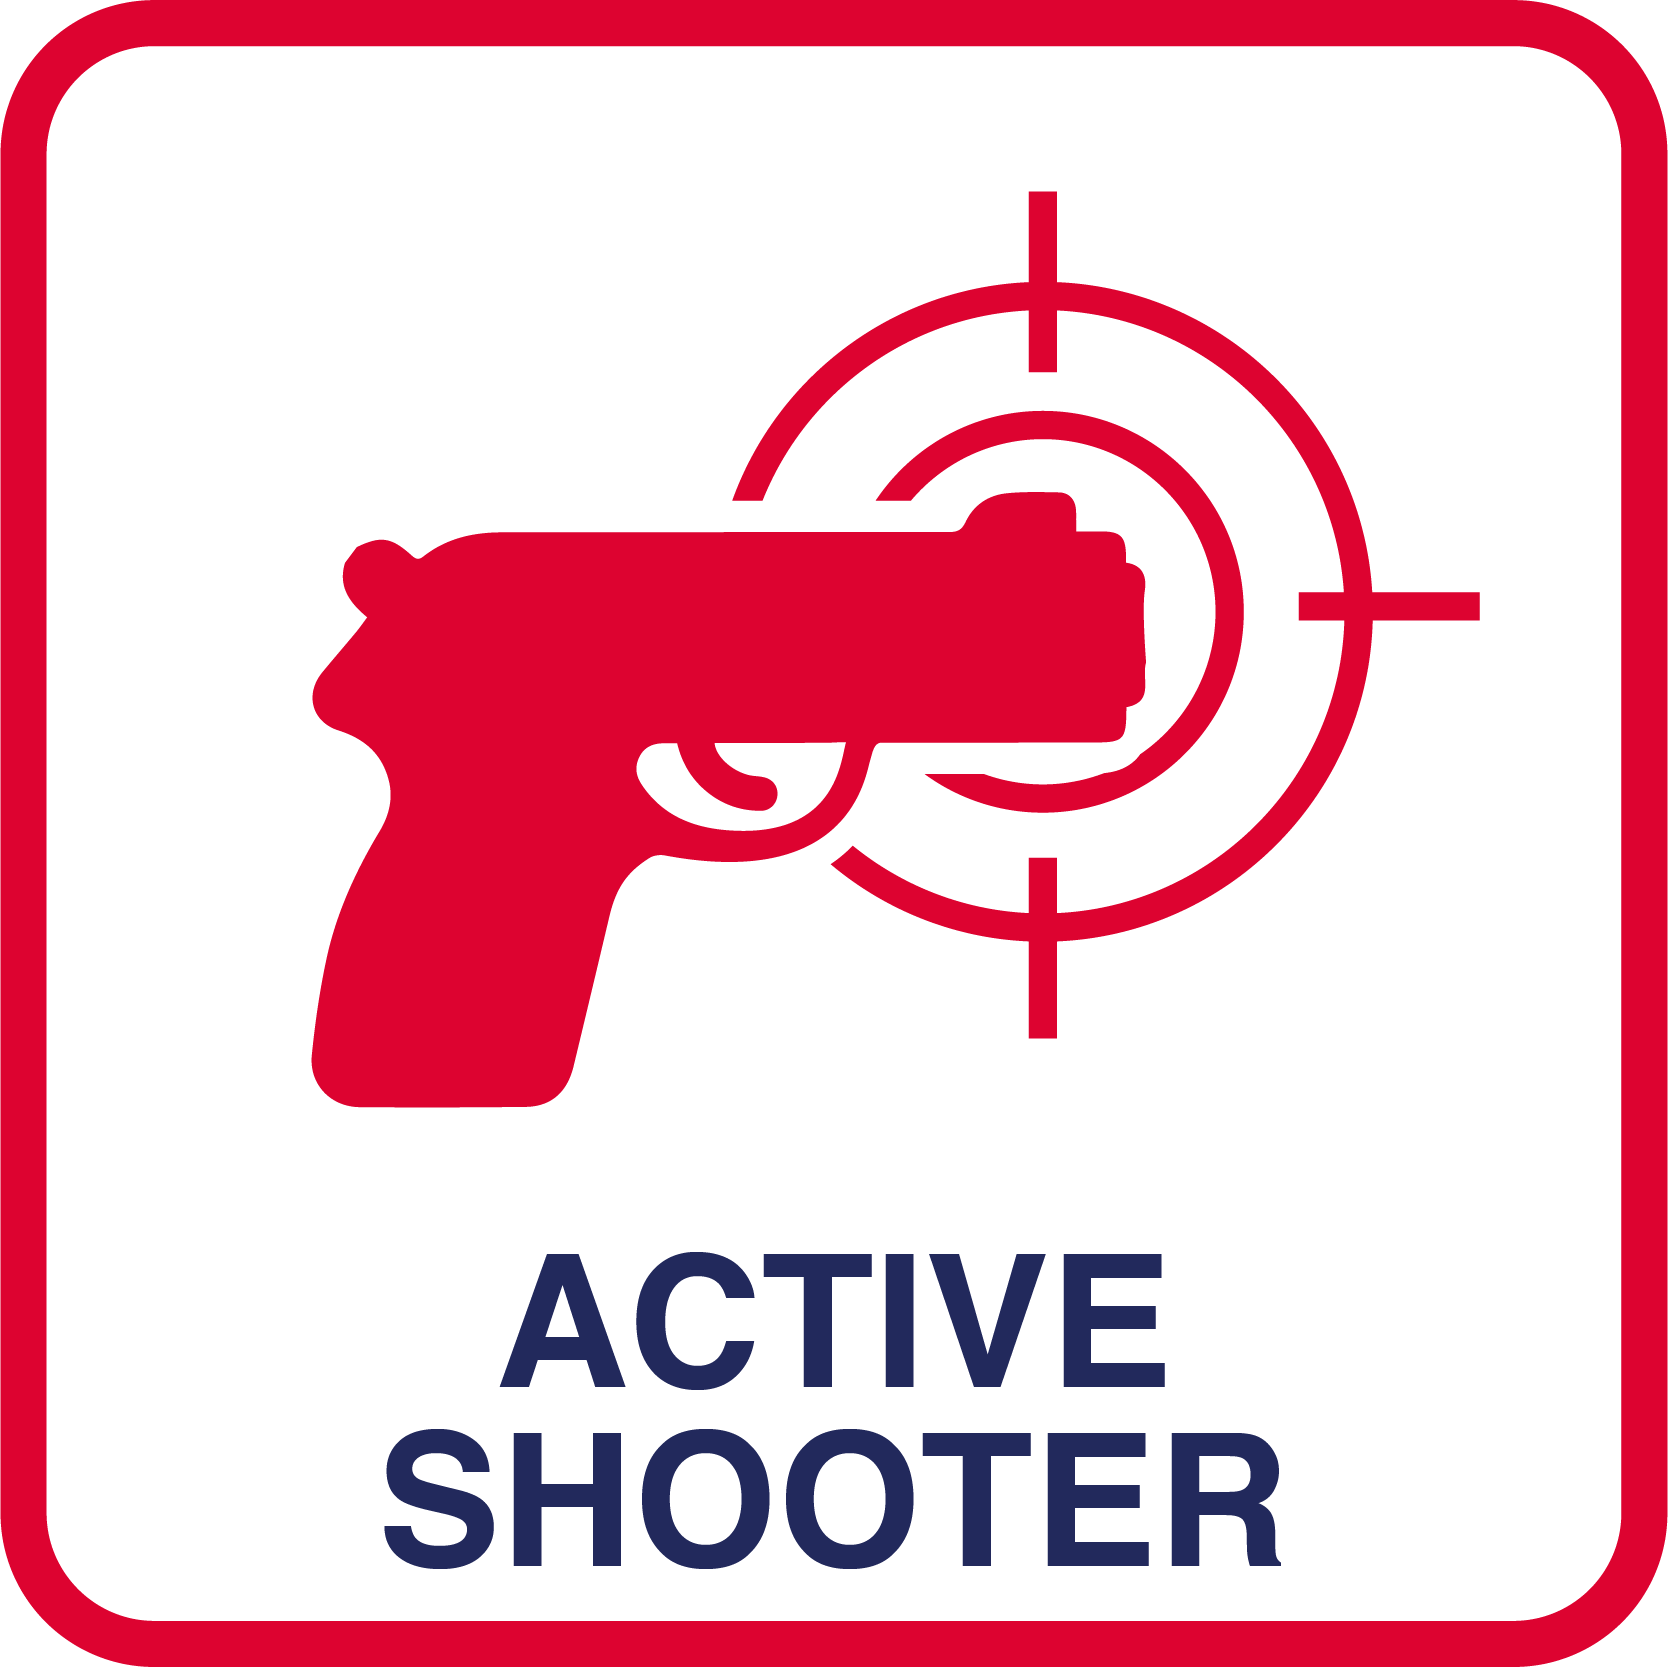 Planning clipart emergency plan. Active threat or shooter